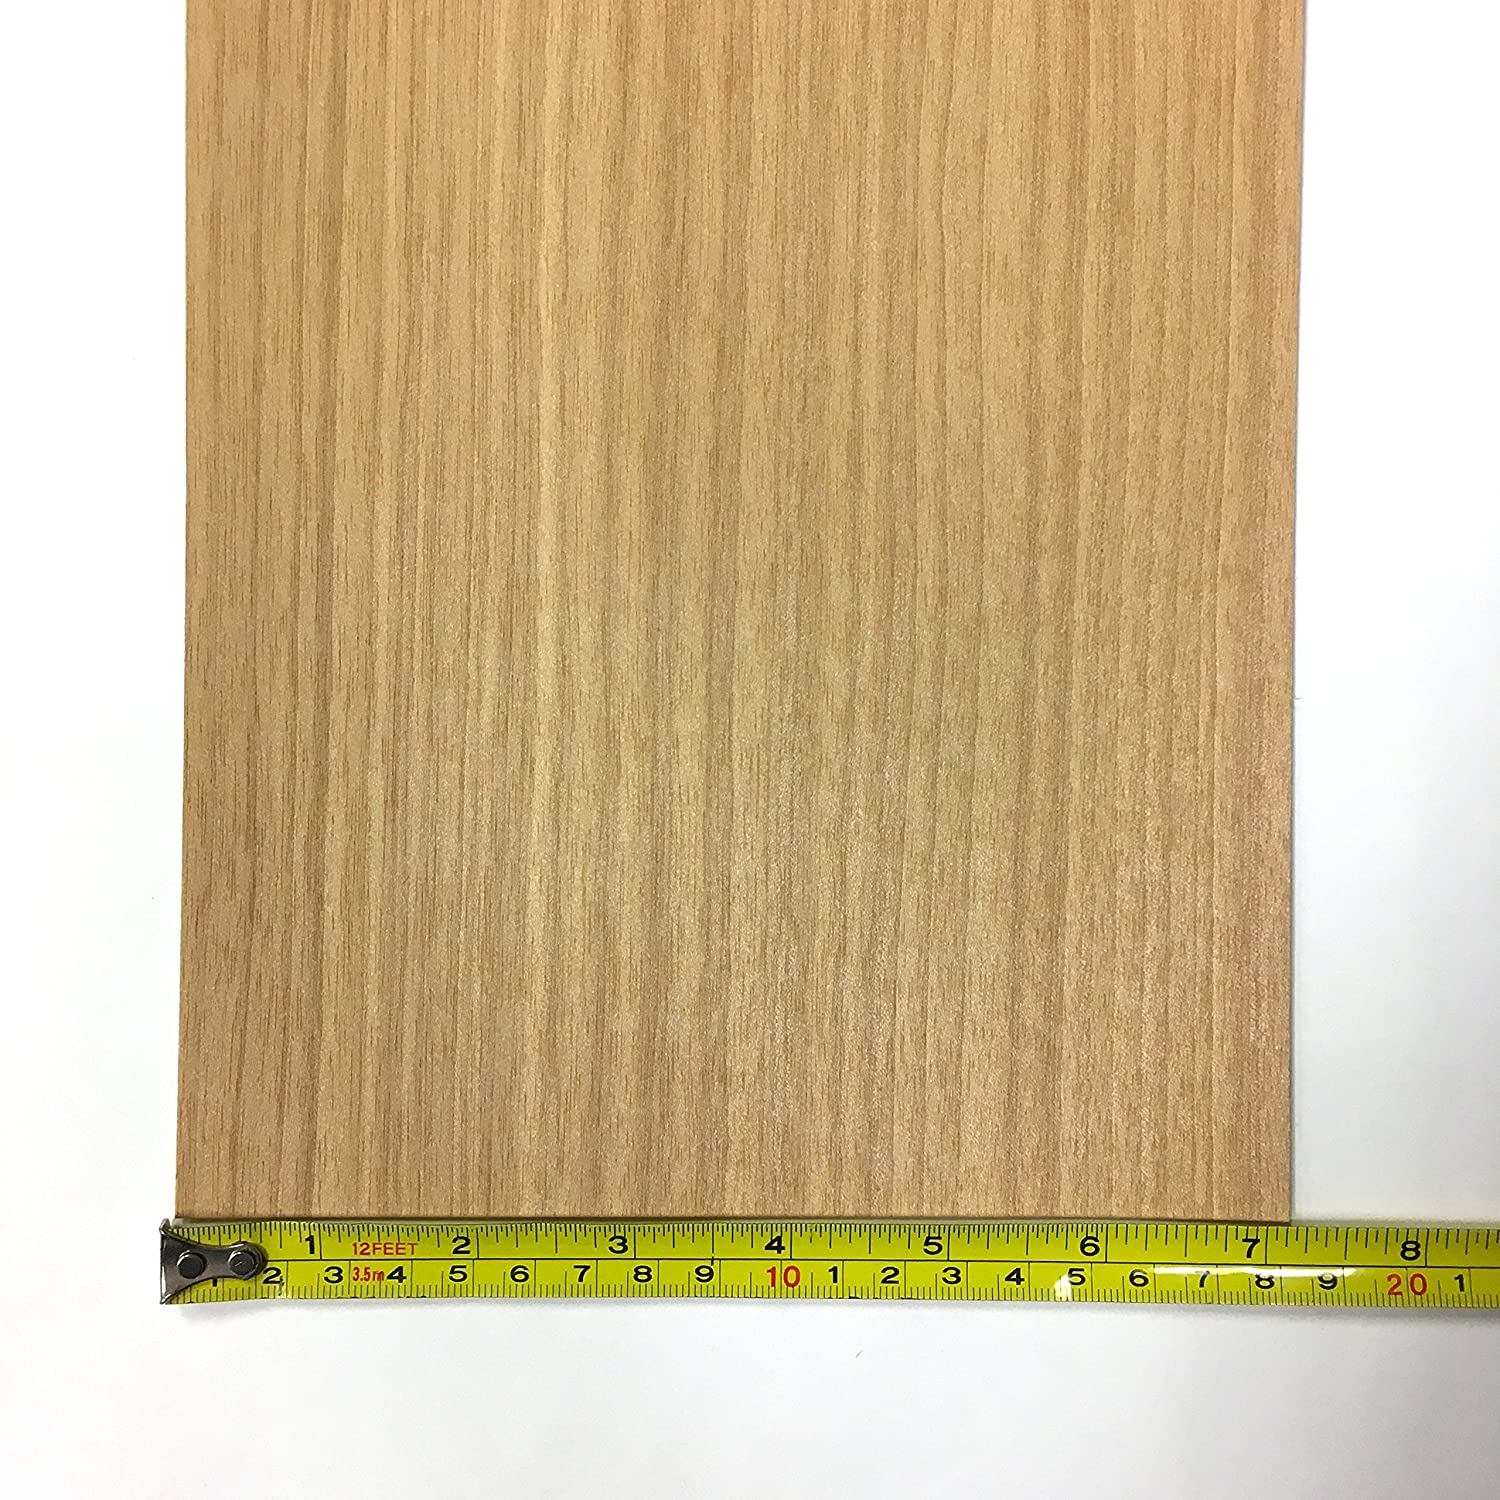 No Backing Anigre Wood Veneer Pack 6W x 30L 7.5 SQ FT 6 pieces